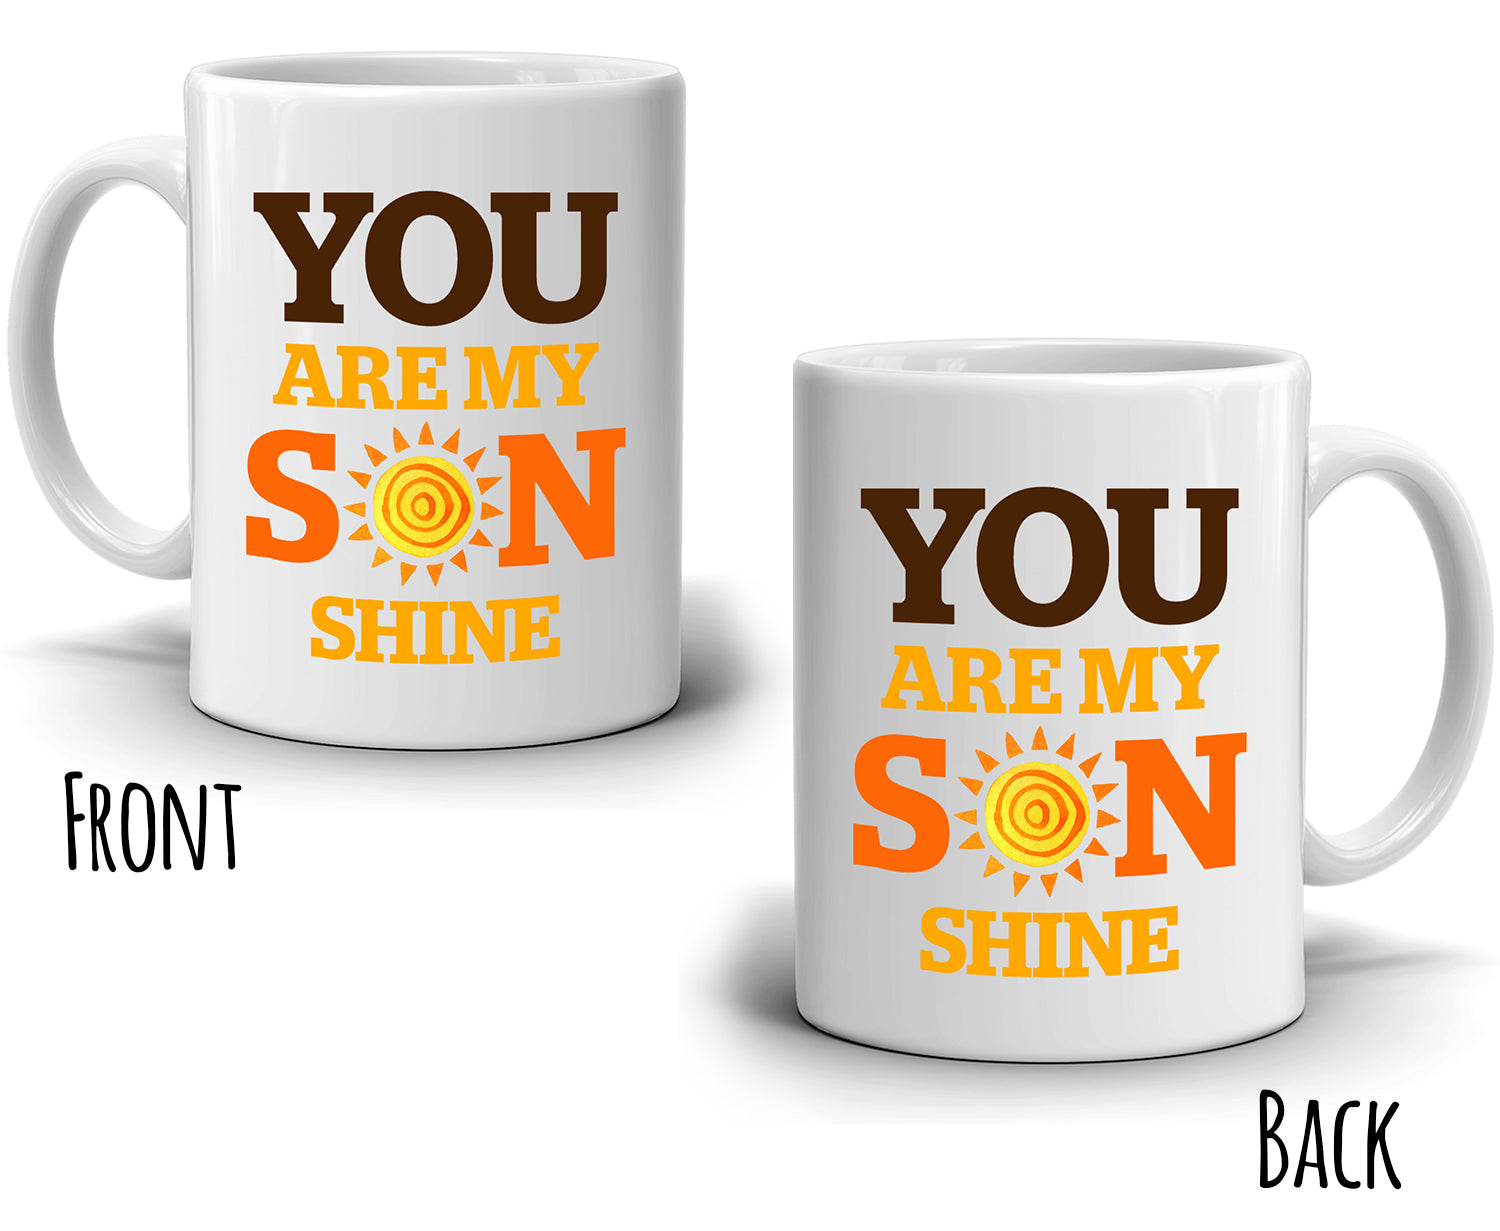 mothers gifts mug for daughters coffee cup i love my daughter printed stir crazy gifts. Black Bedroom Furniture Sets. Home Design Ideas